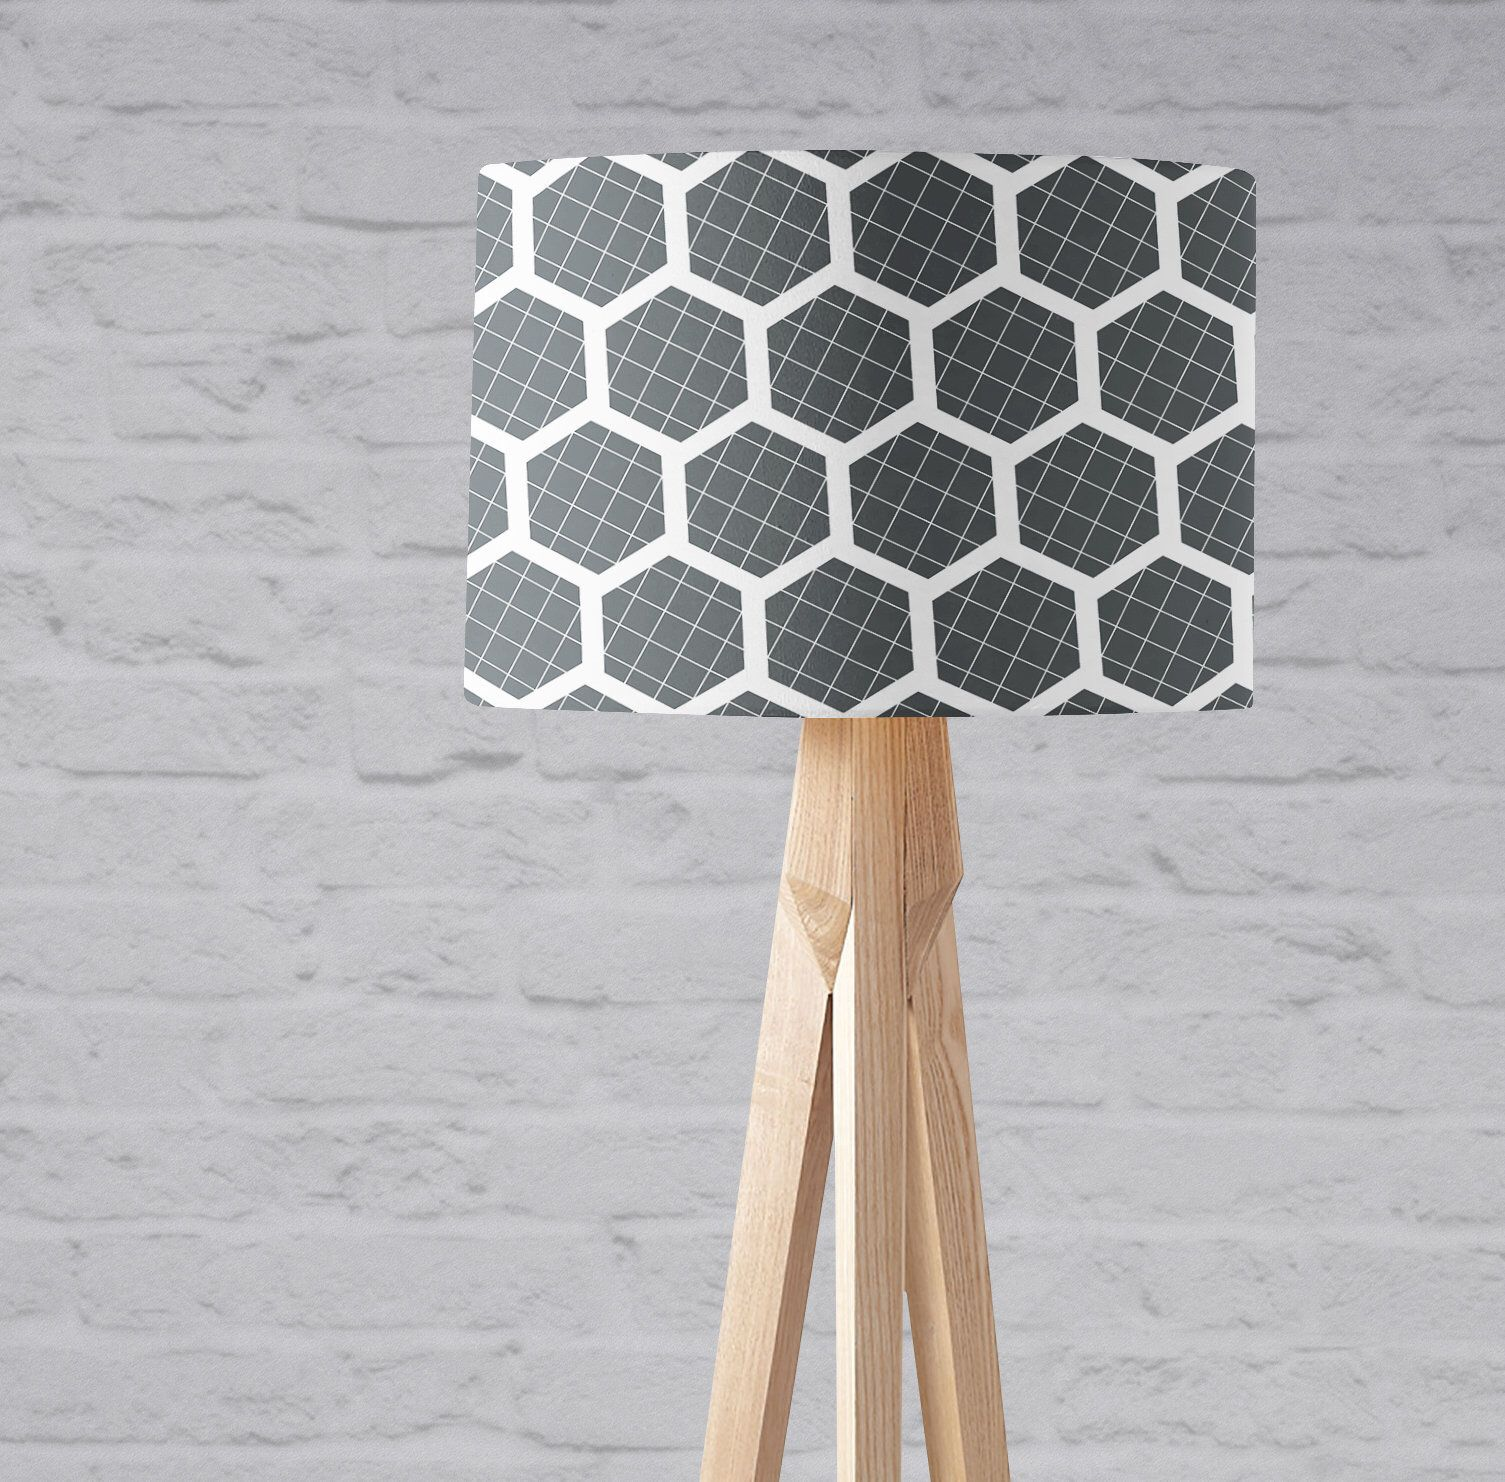 Geometric Lamp Shades Grey Hexagon Hexagon Lampshade Grey And White Lampshades Modern Home Decor Grey Home Accessories Grey Lampshade Geometric Lamp Lamp Shades Contemporary Lamp Shades